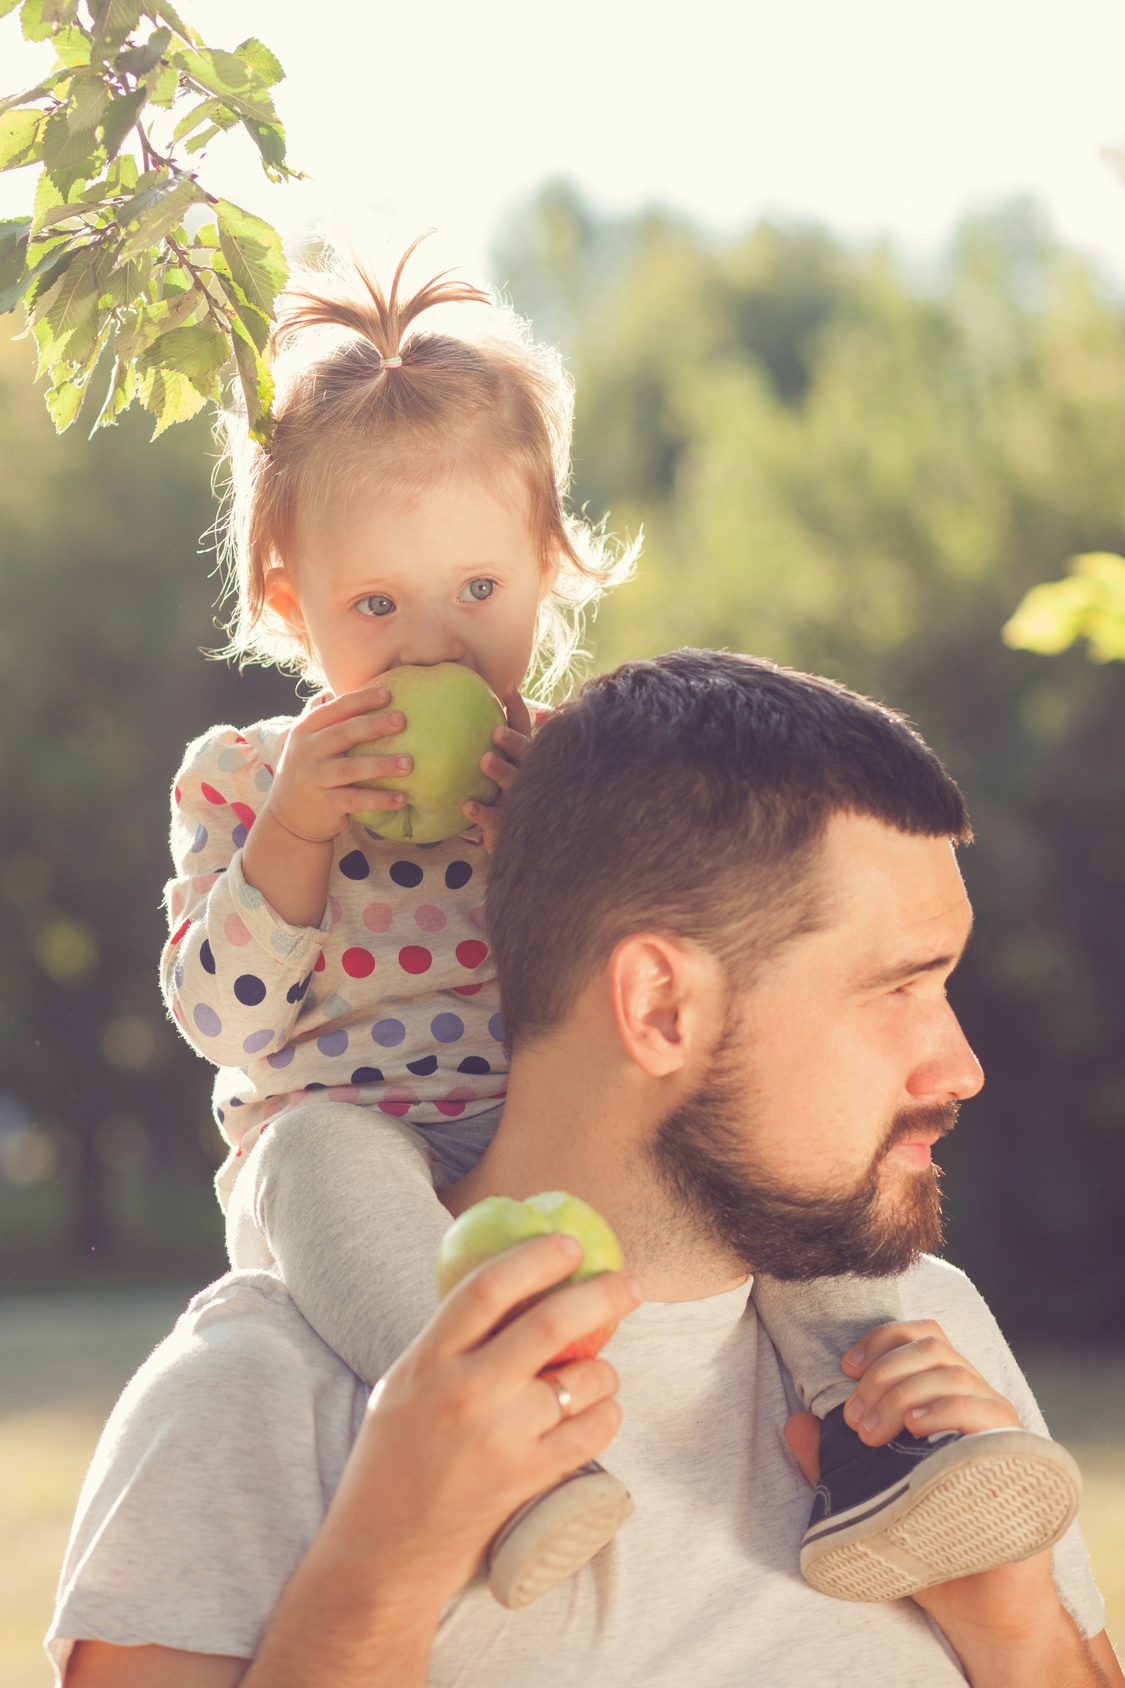 Father and toddler share time together and if you need a top paternity lawyer find one here in Chicago.